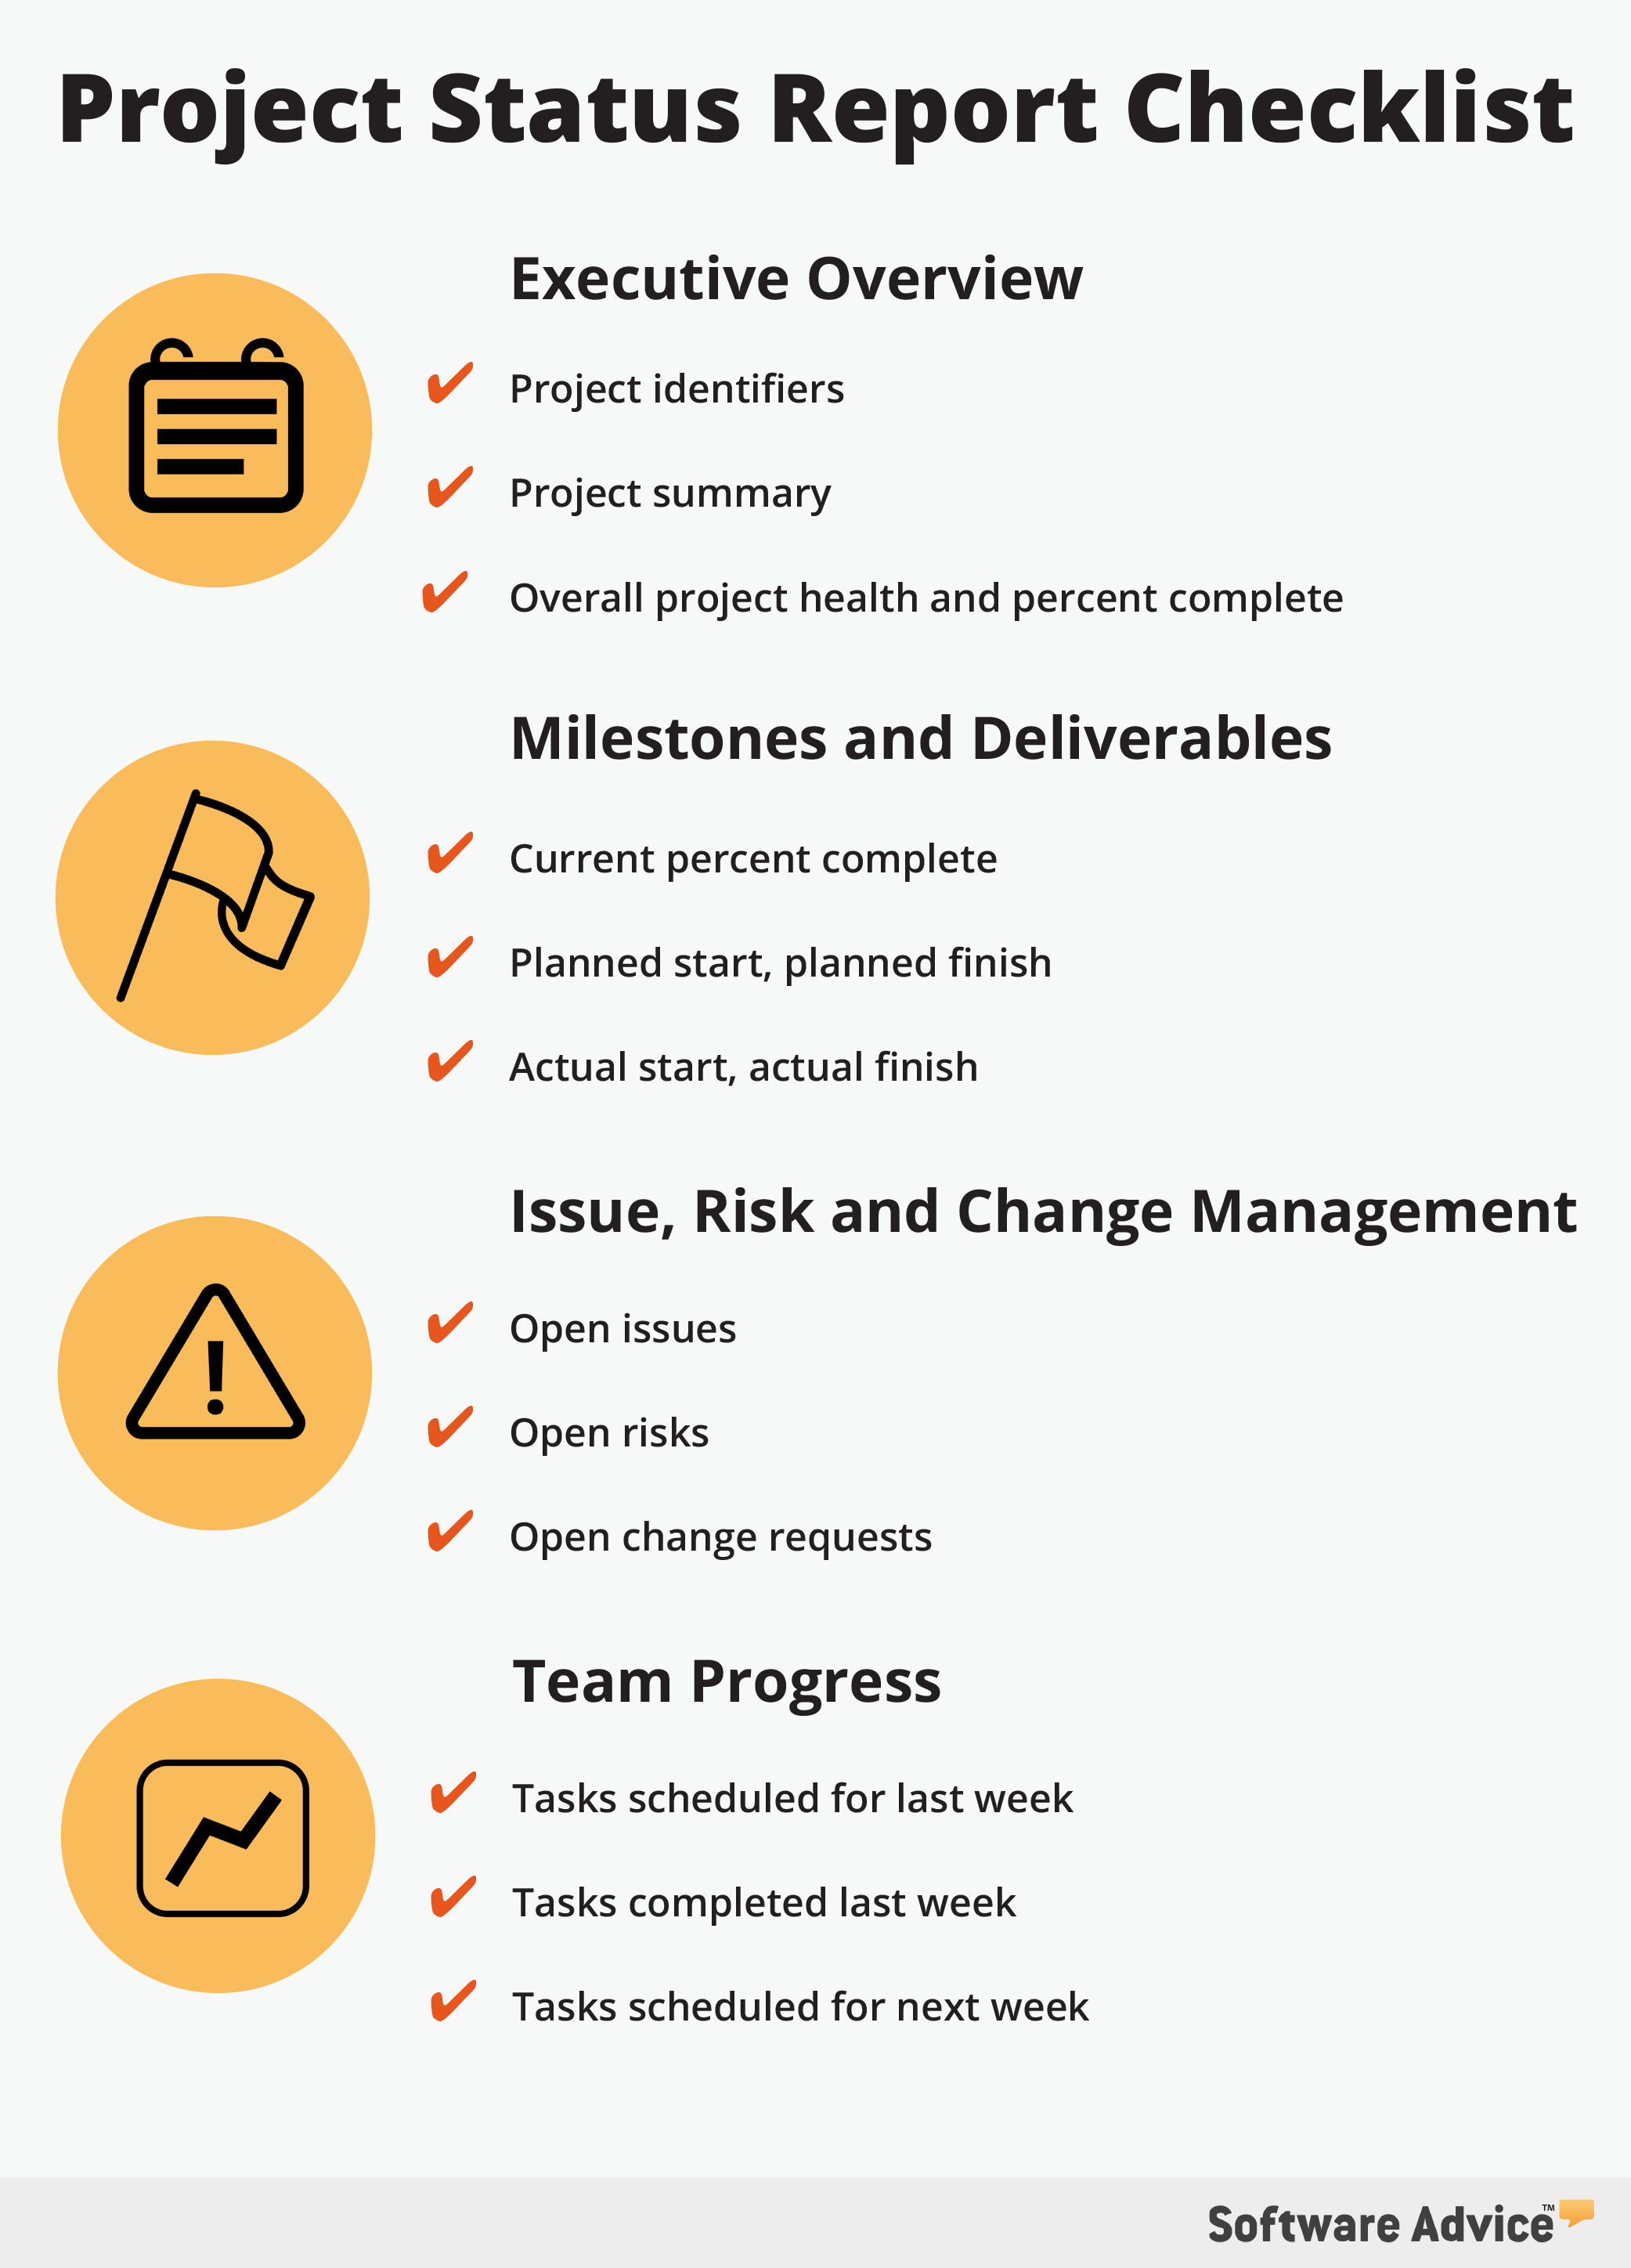 Project Status Report Checklist  Software Advice  This Checklist